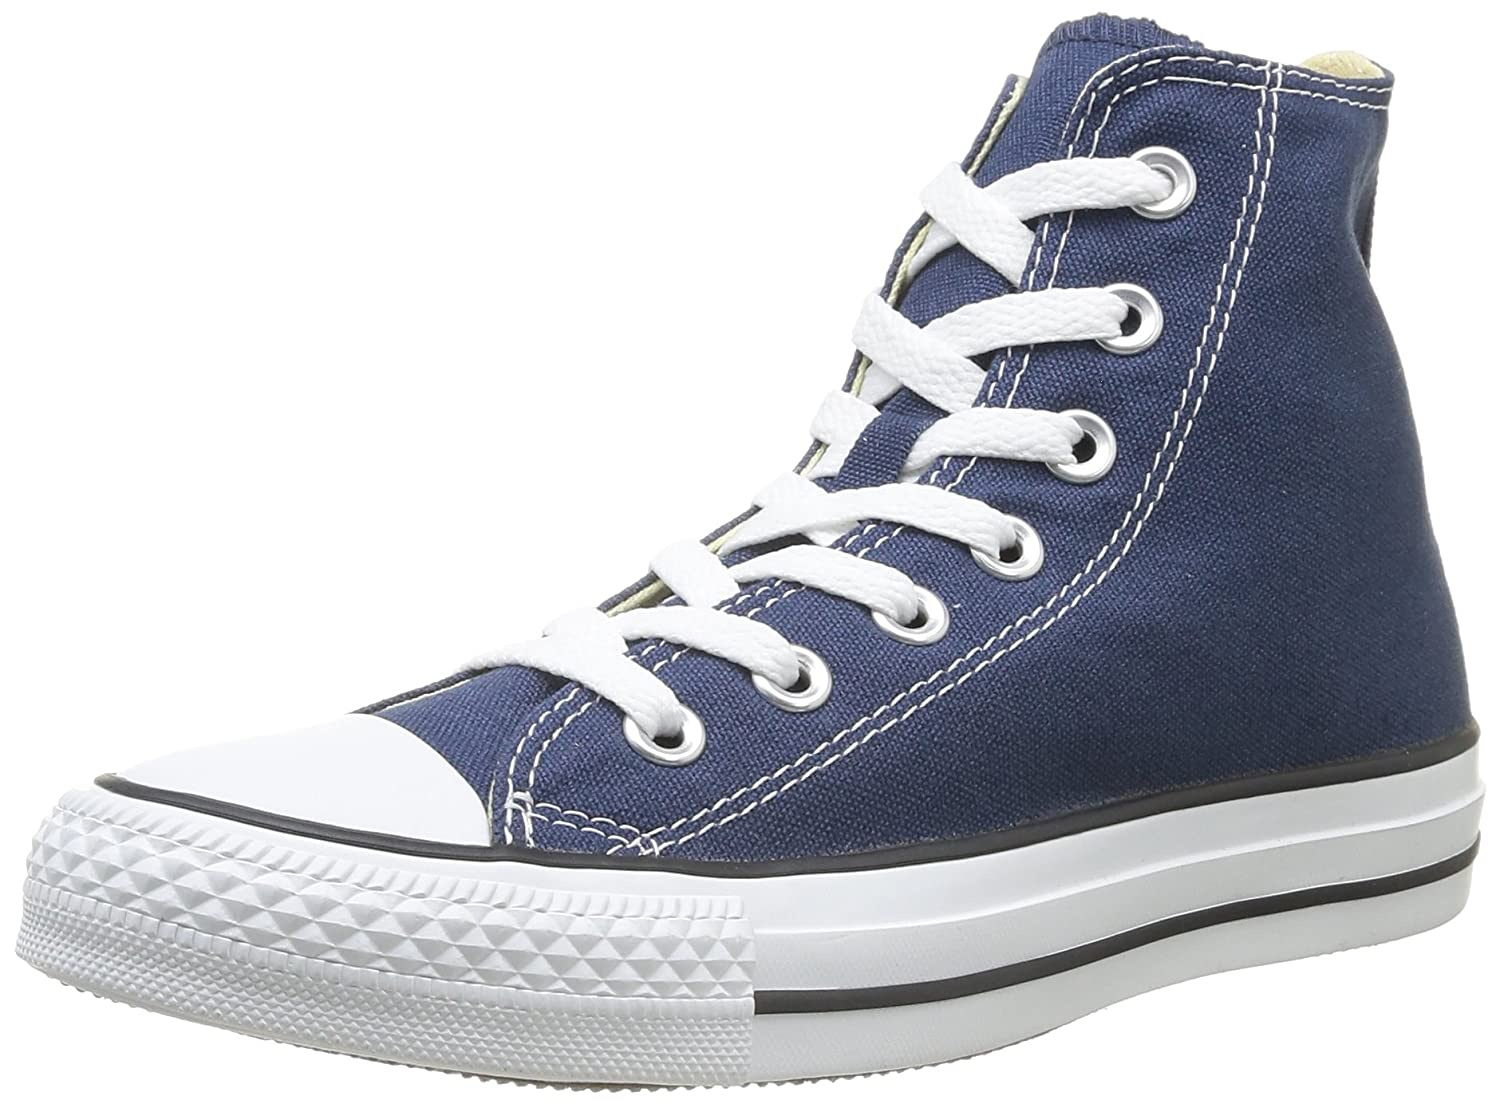 Converse Chuck Taylor All Star Seasonal Color Hi Women B01LPNJXLW 12 B(M) US Women Hi / 10 D(M) US Men|Navy 0454bd